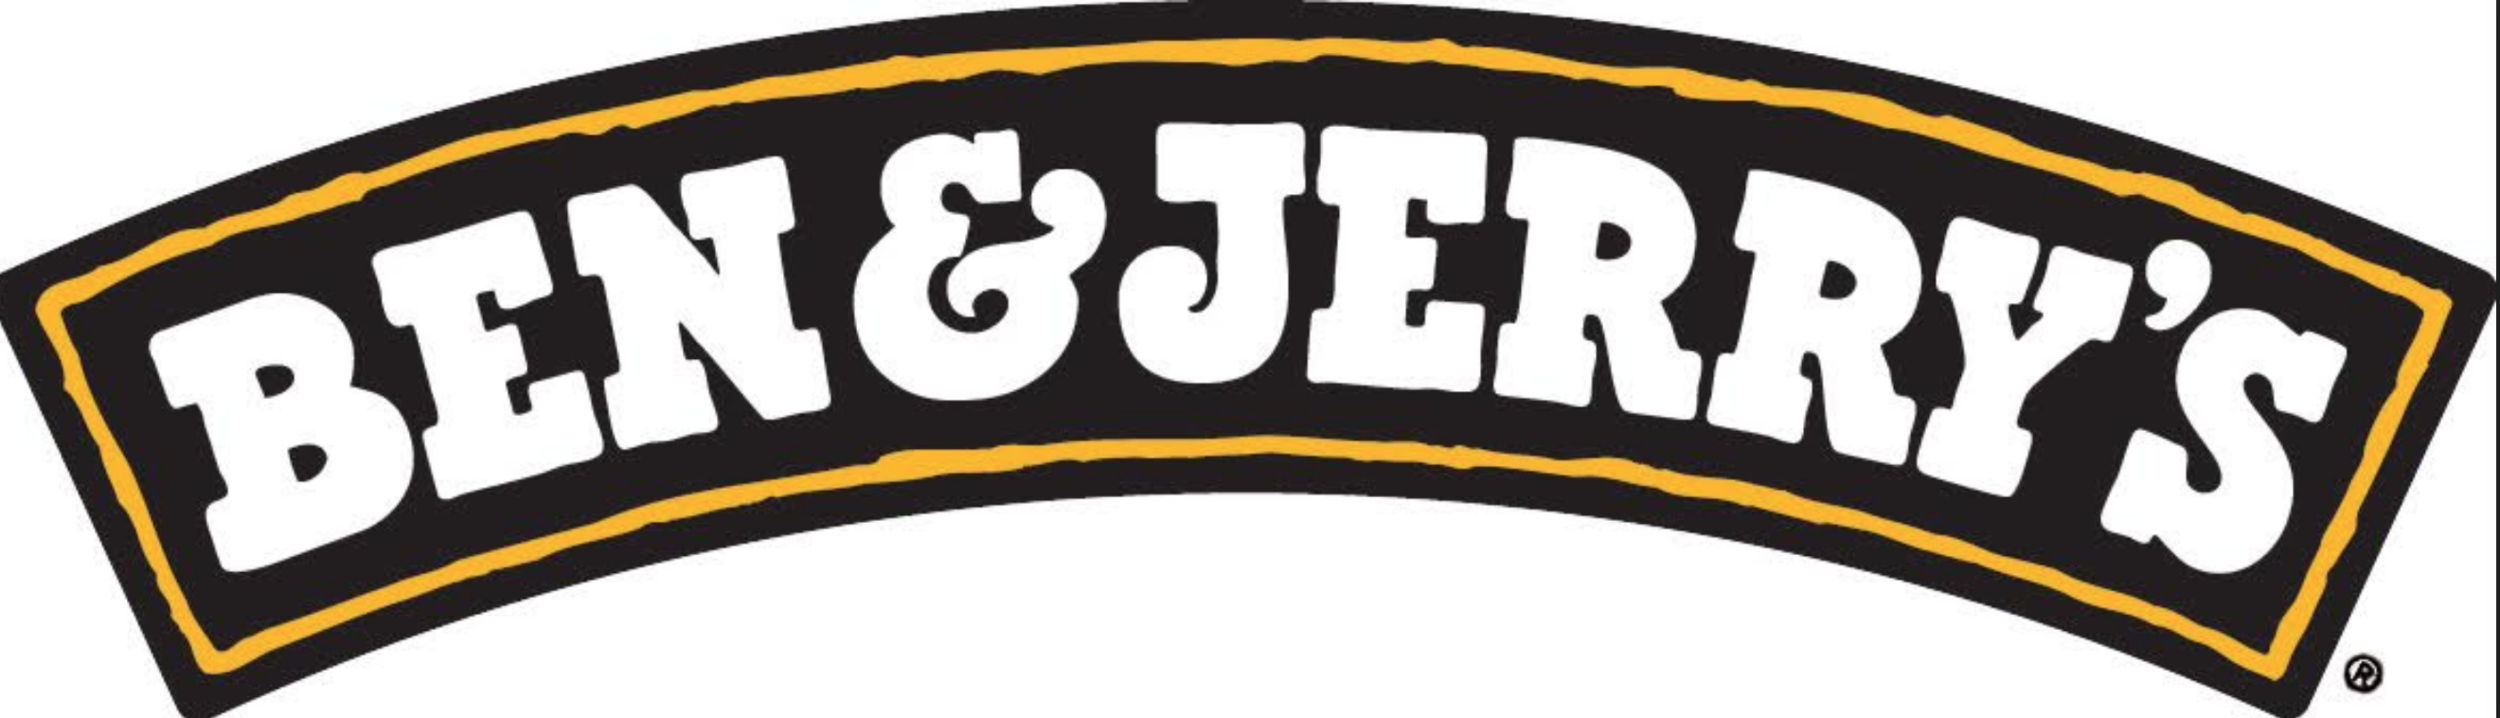 Ben and Jerrys web.png